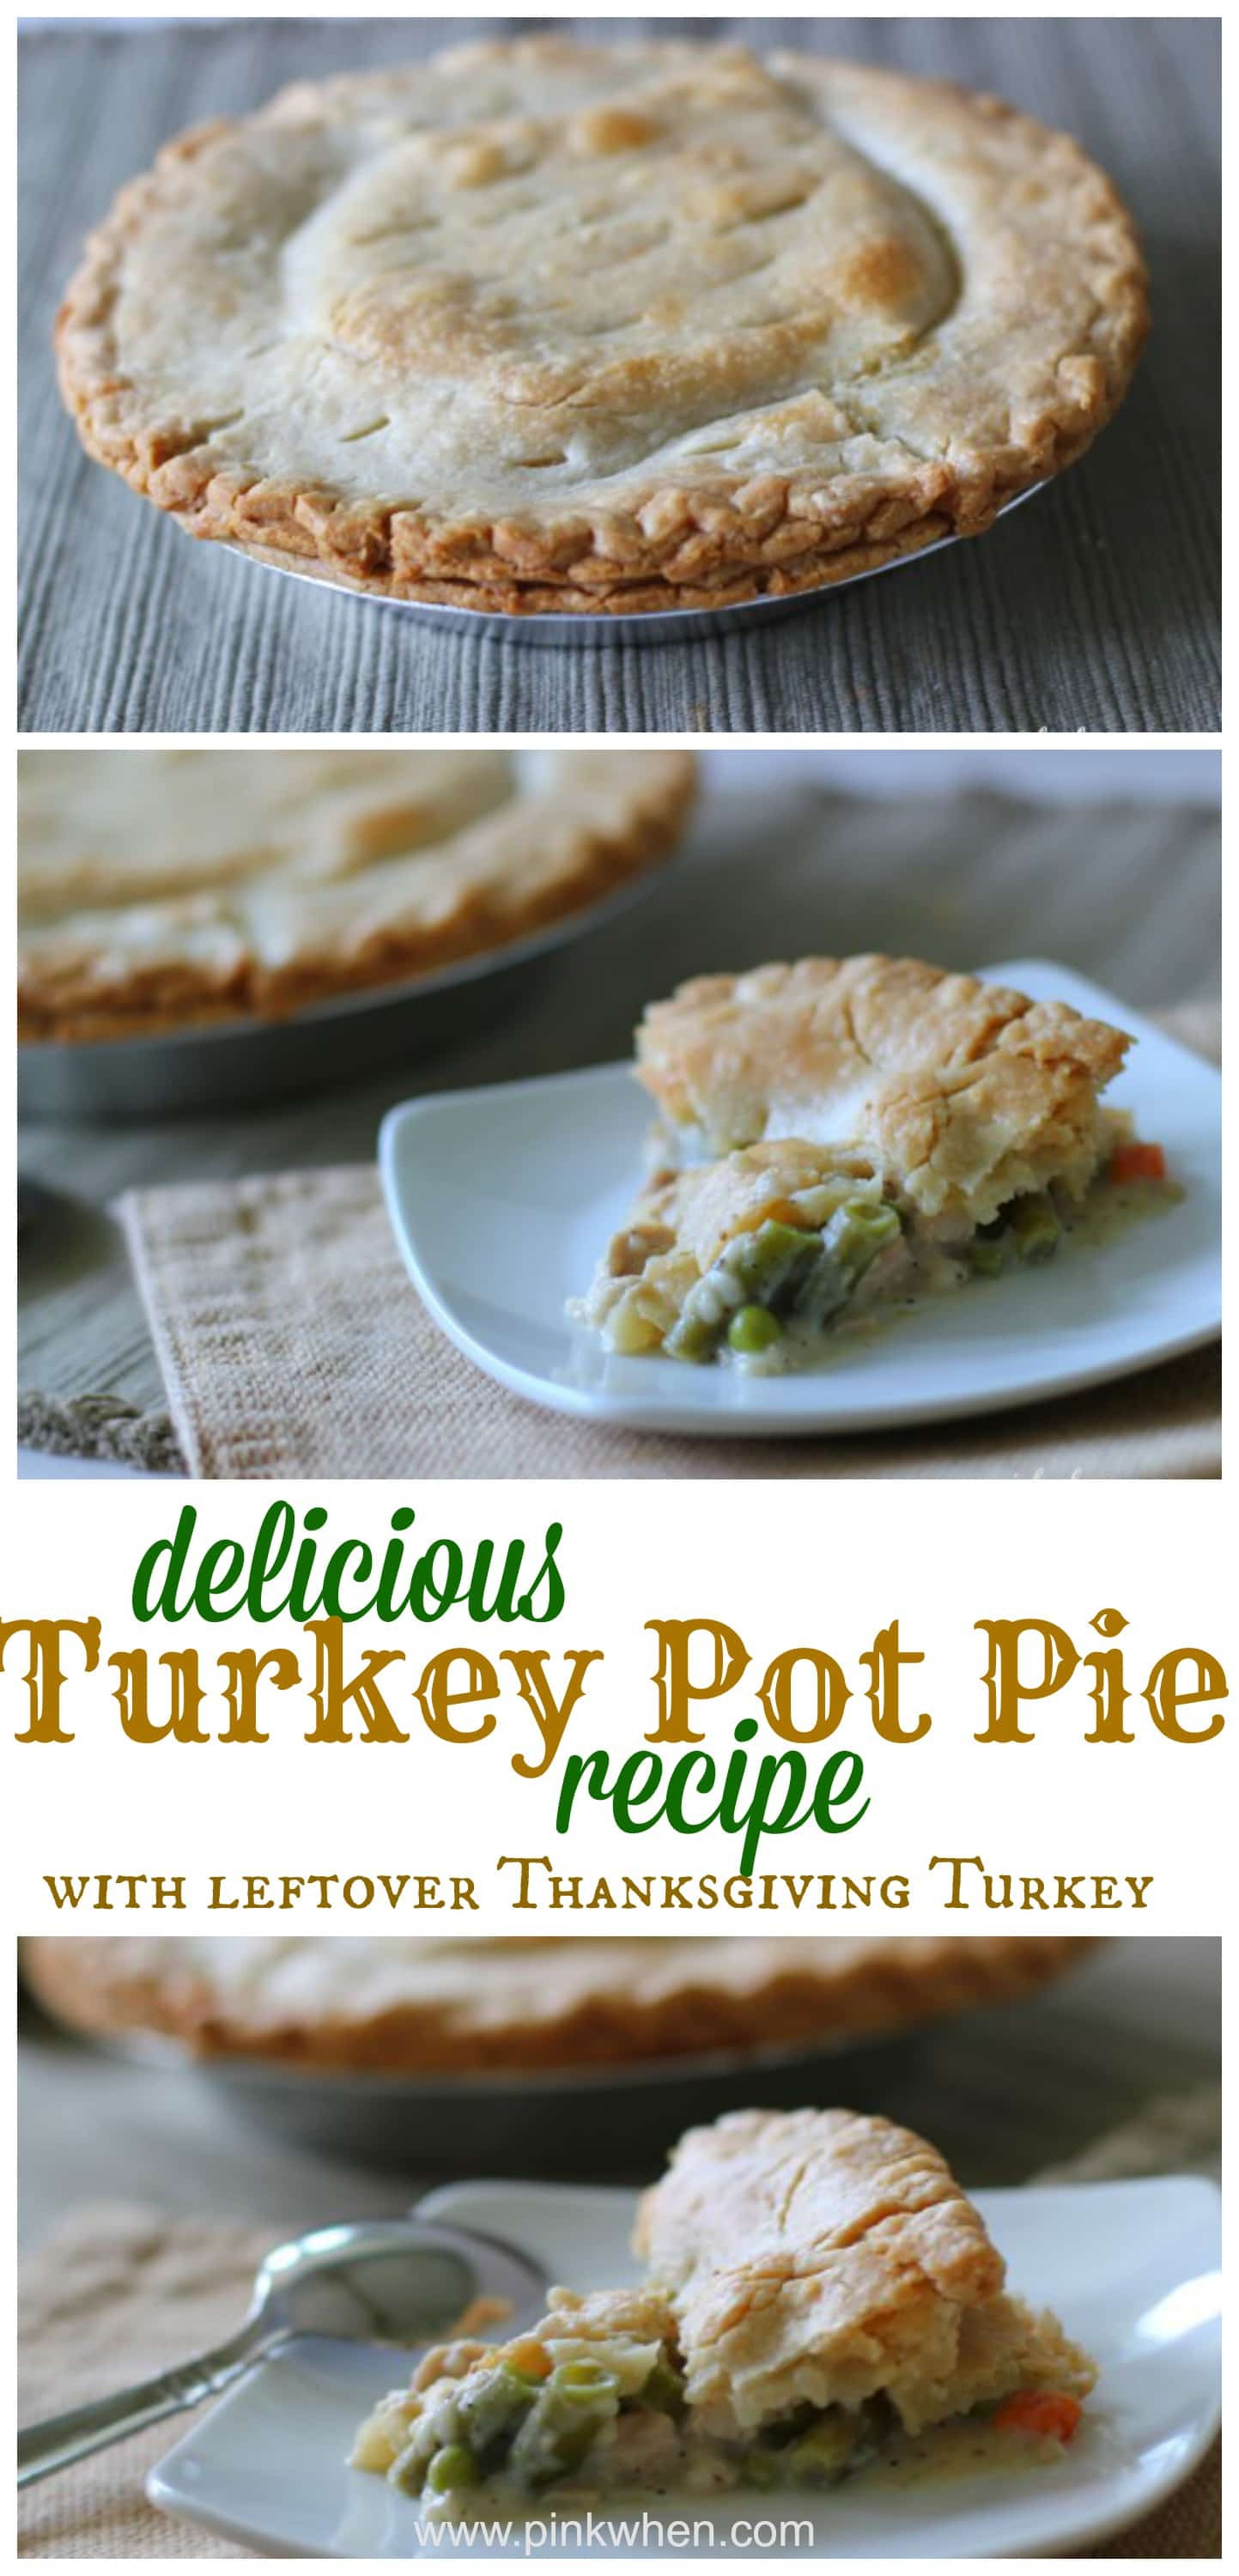 Delicious Turkey Recipes For Thanksgiving  Delicious Turkey Pot Pie Recipe PinkWhen